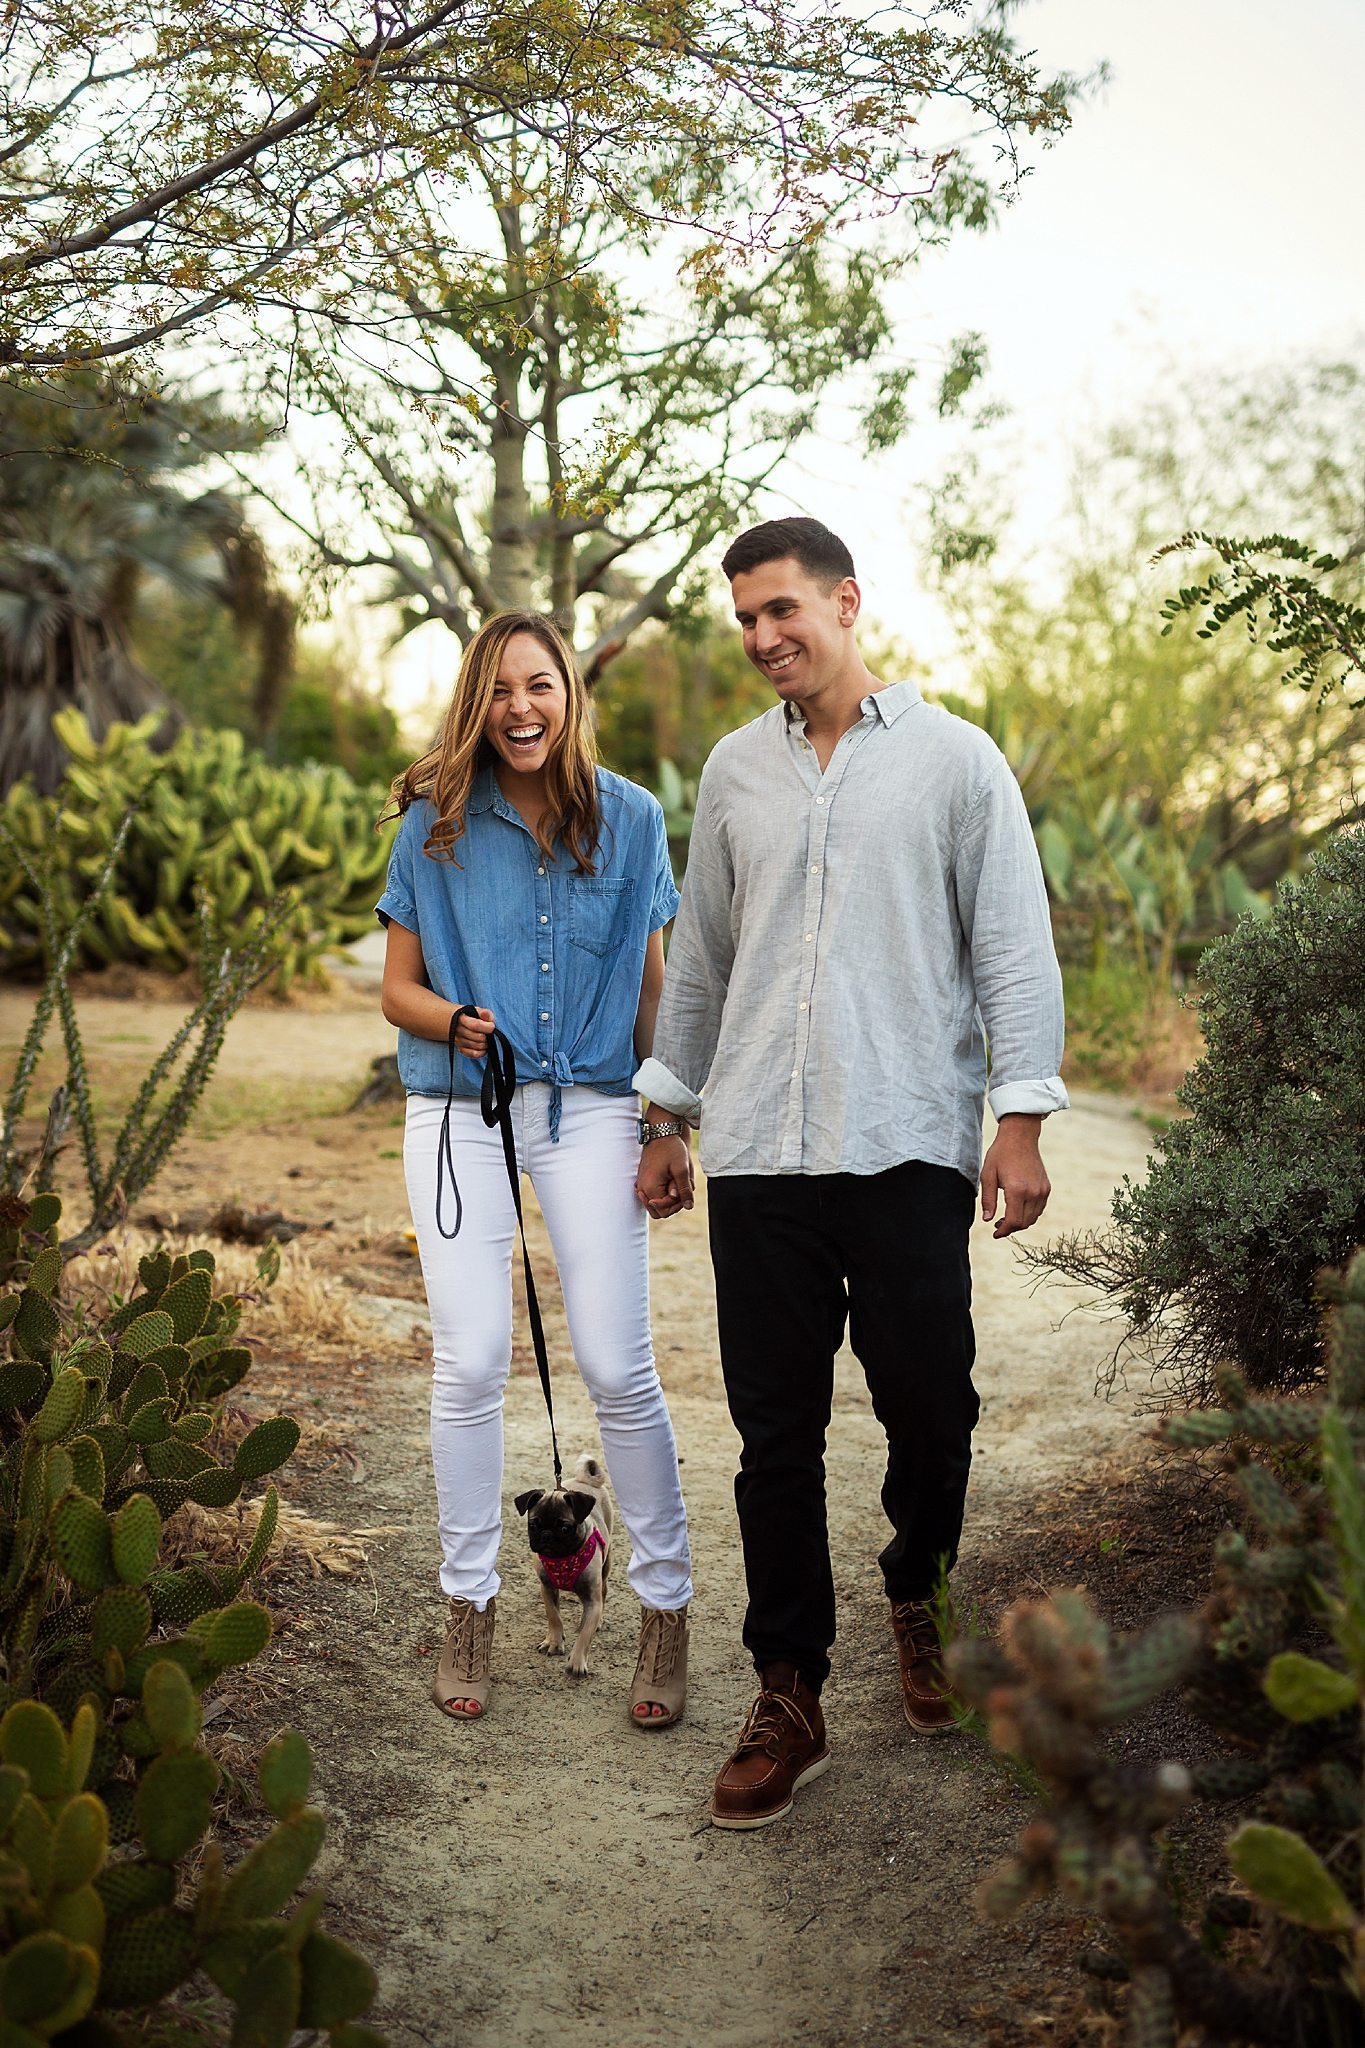 Golden hour engagement session at Balboa Park, San Diego, California with Meaghan and Eli. The couple walks their pug, Frankie, through the cactus garden.